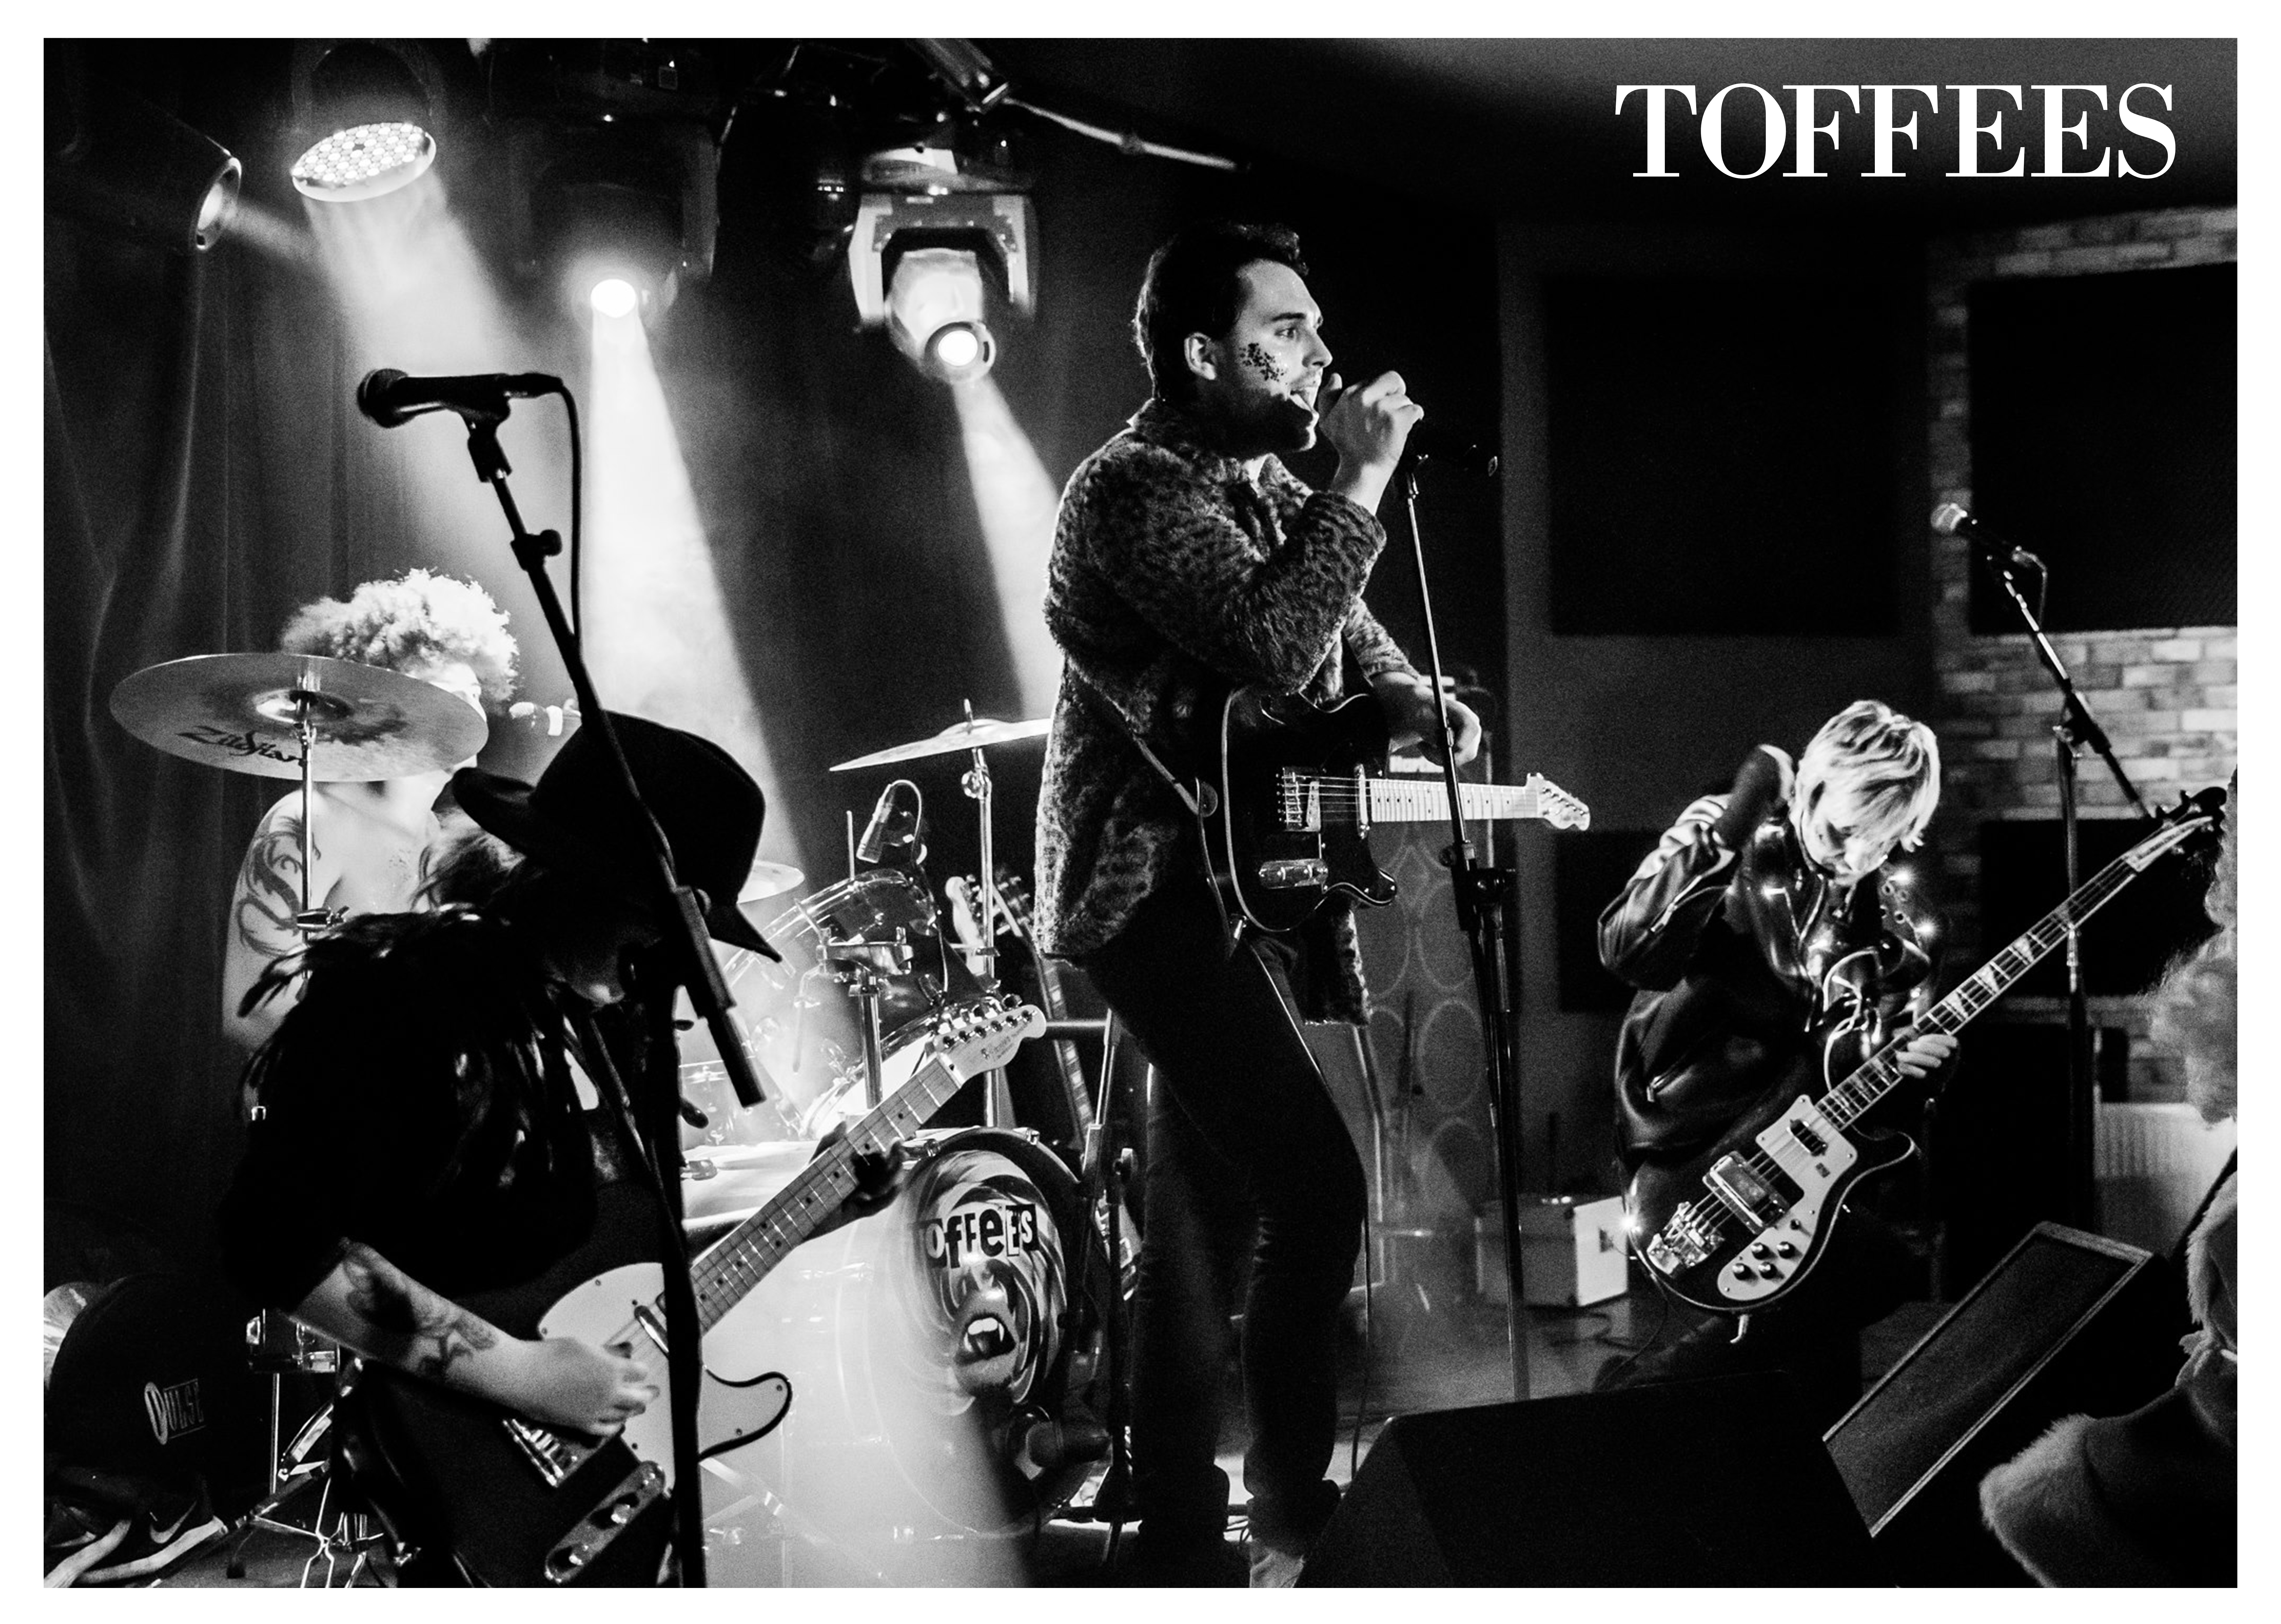 Toffees Full Band Poster - TOFFEES